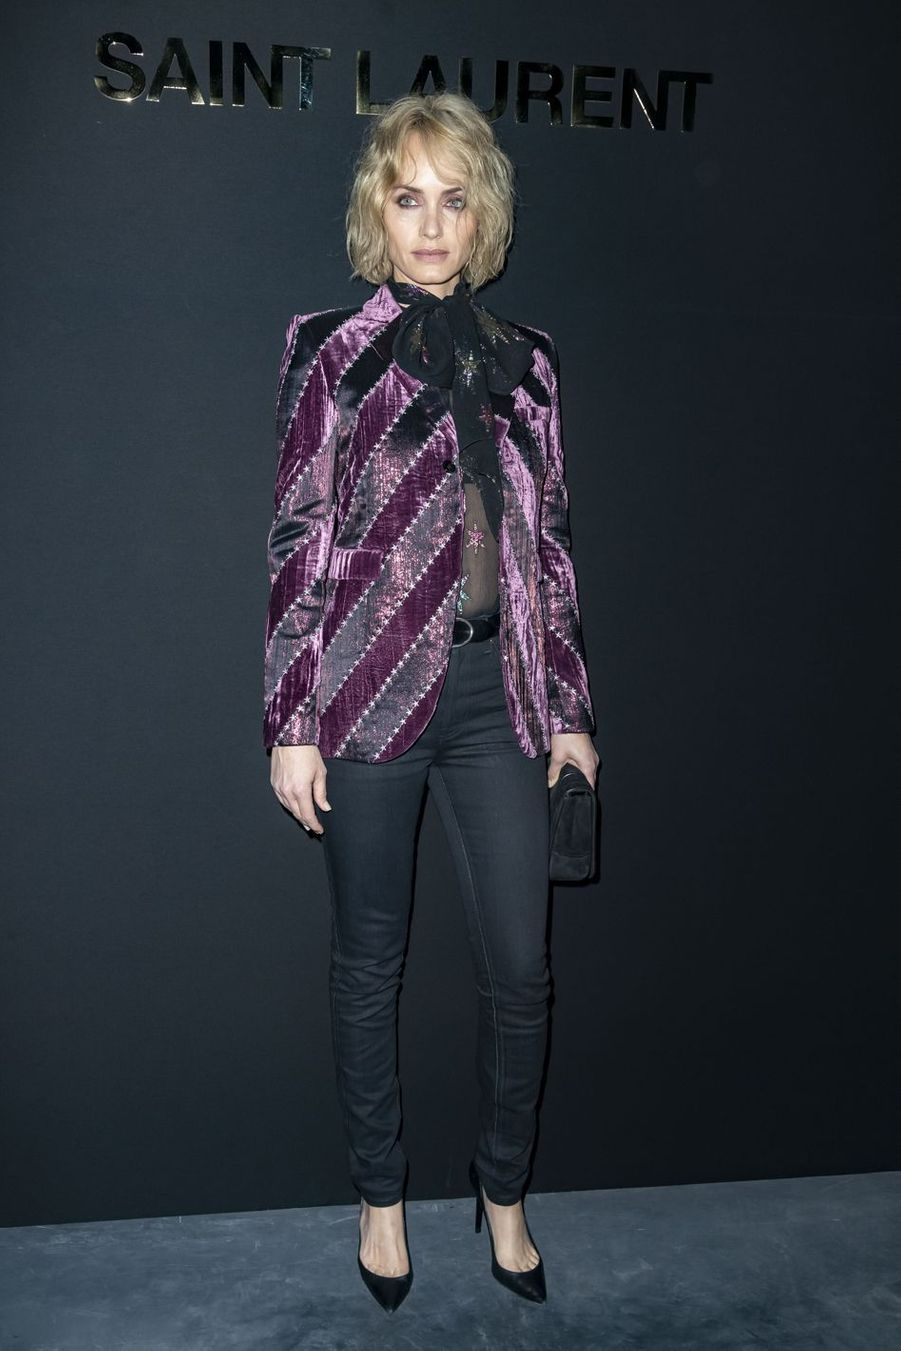 Amber Valletta au défilé Saint Laurent lors de la Fashion Week de Paris le 26 février 2019